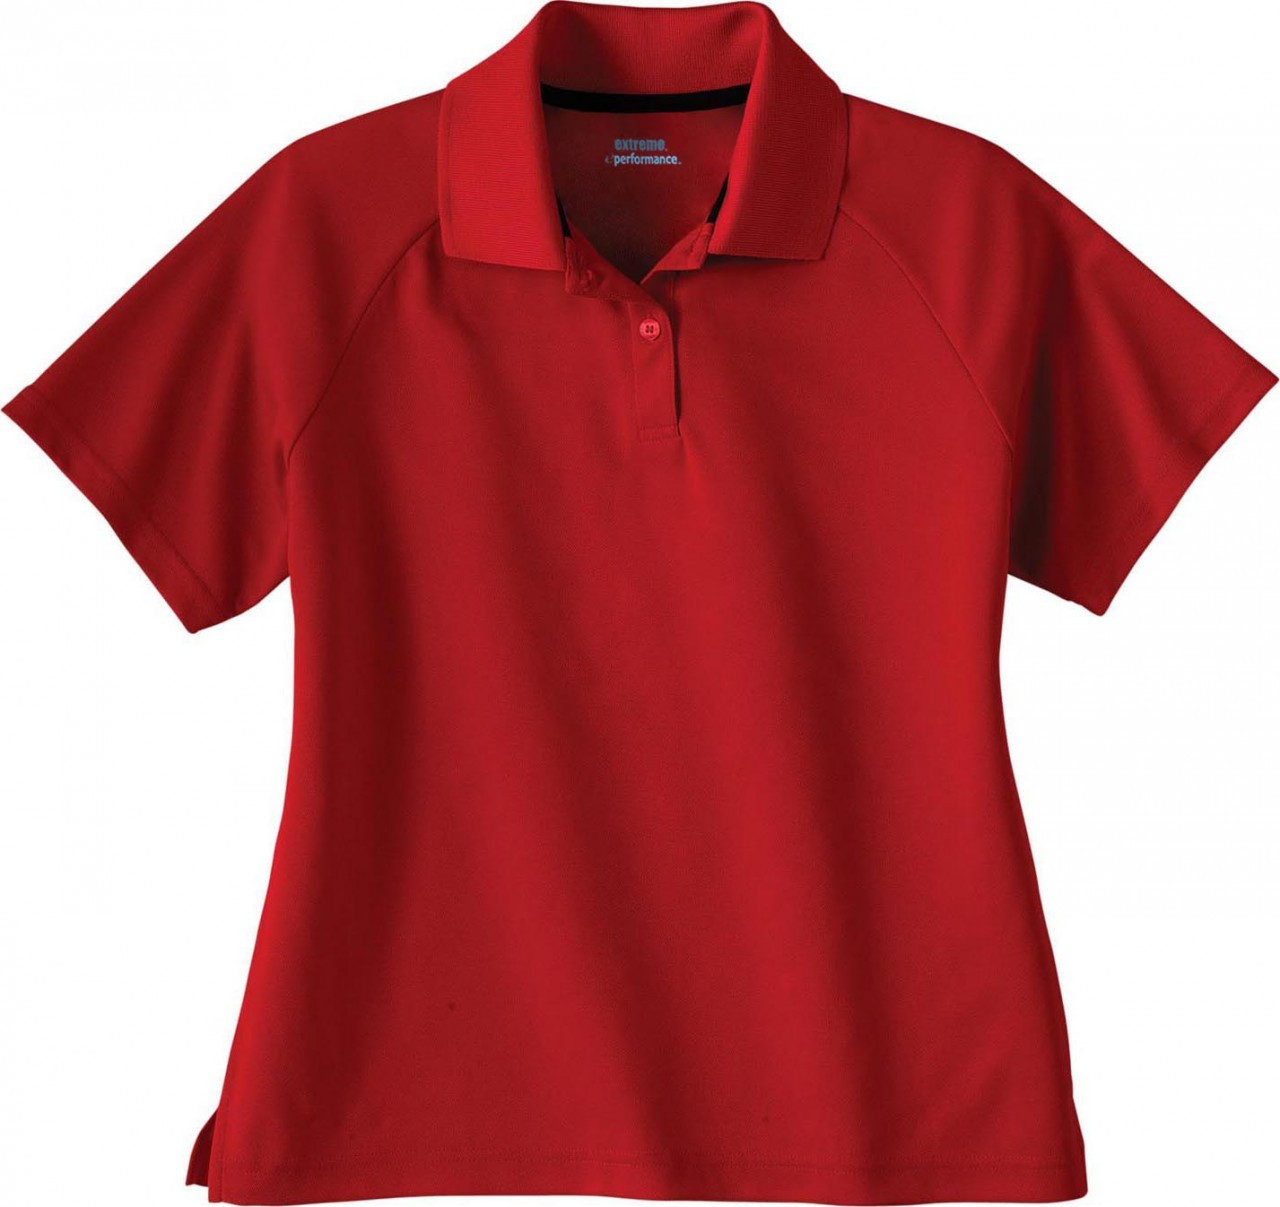 Classic Red - 75046 Extreme Ladies' Eperformance Pique Polo Shirt | BlankClothing.ca